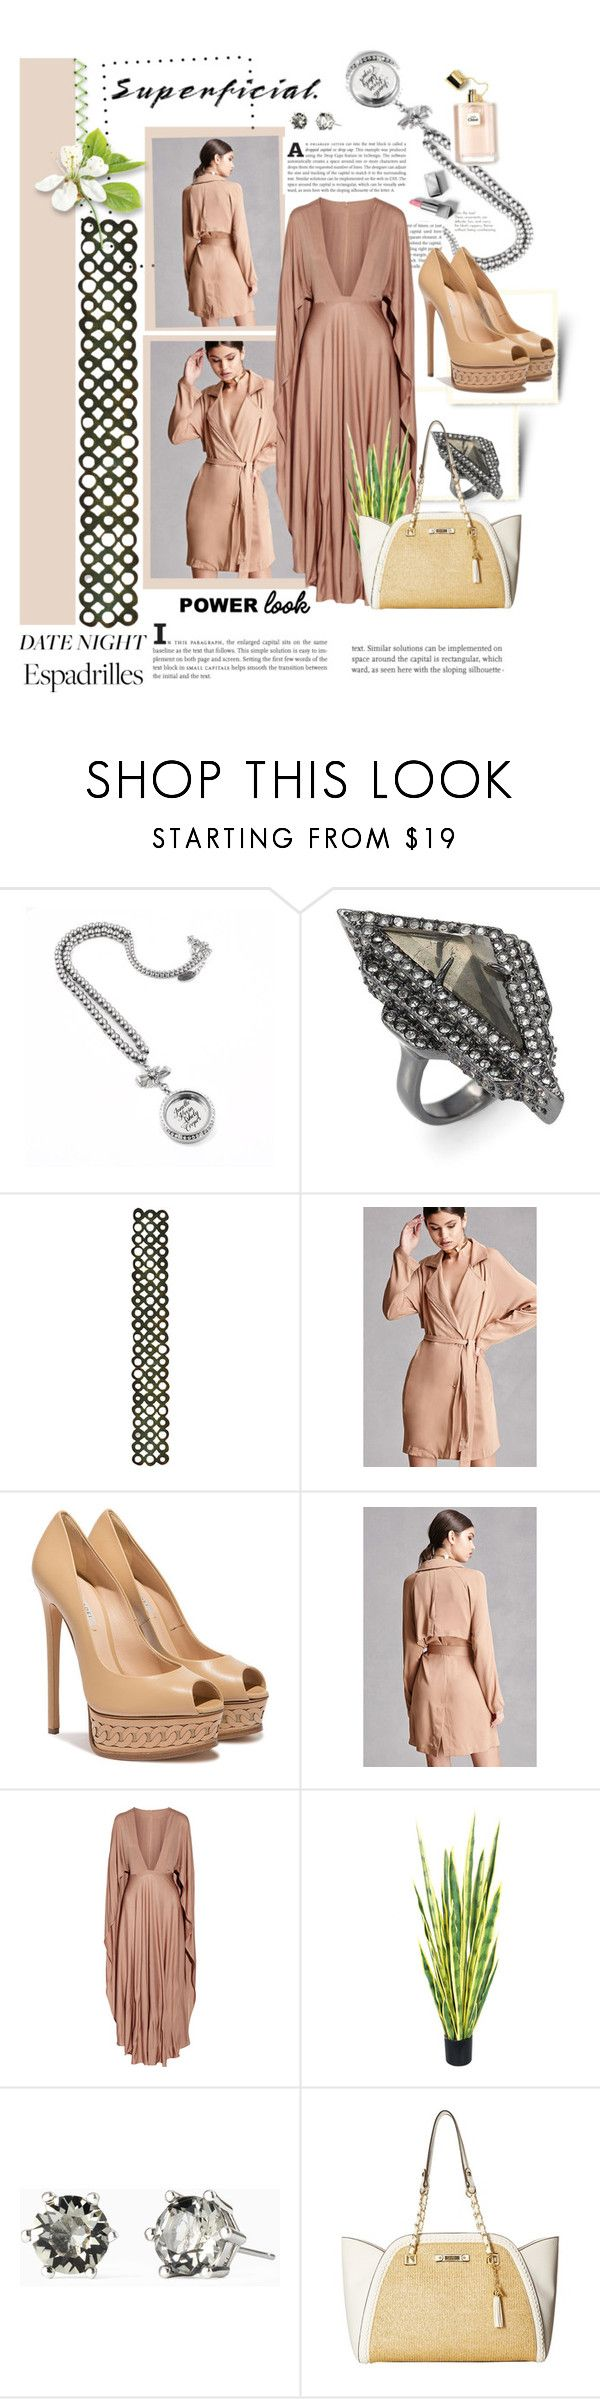 """superficial!!"" by marleen1978 ❤ liked on Polyvore featuring Alexis Bittar, Sizzix, Forever 21, Casadei, Valentino, Stella & Dot, Jessica Simpson, Burberry, Summer and DateNight"